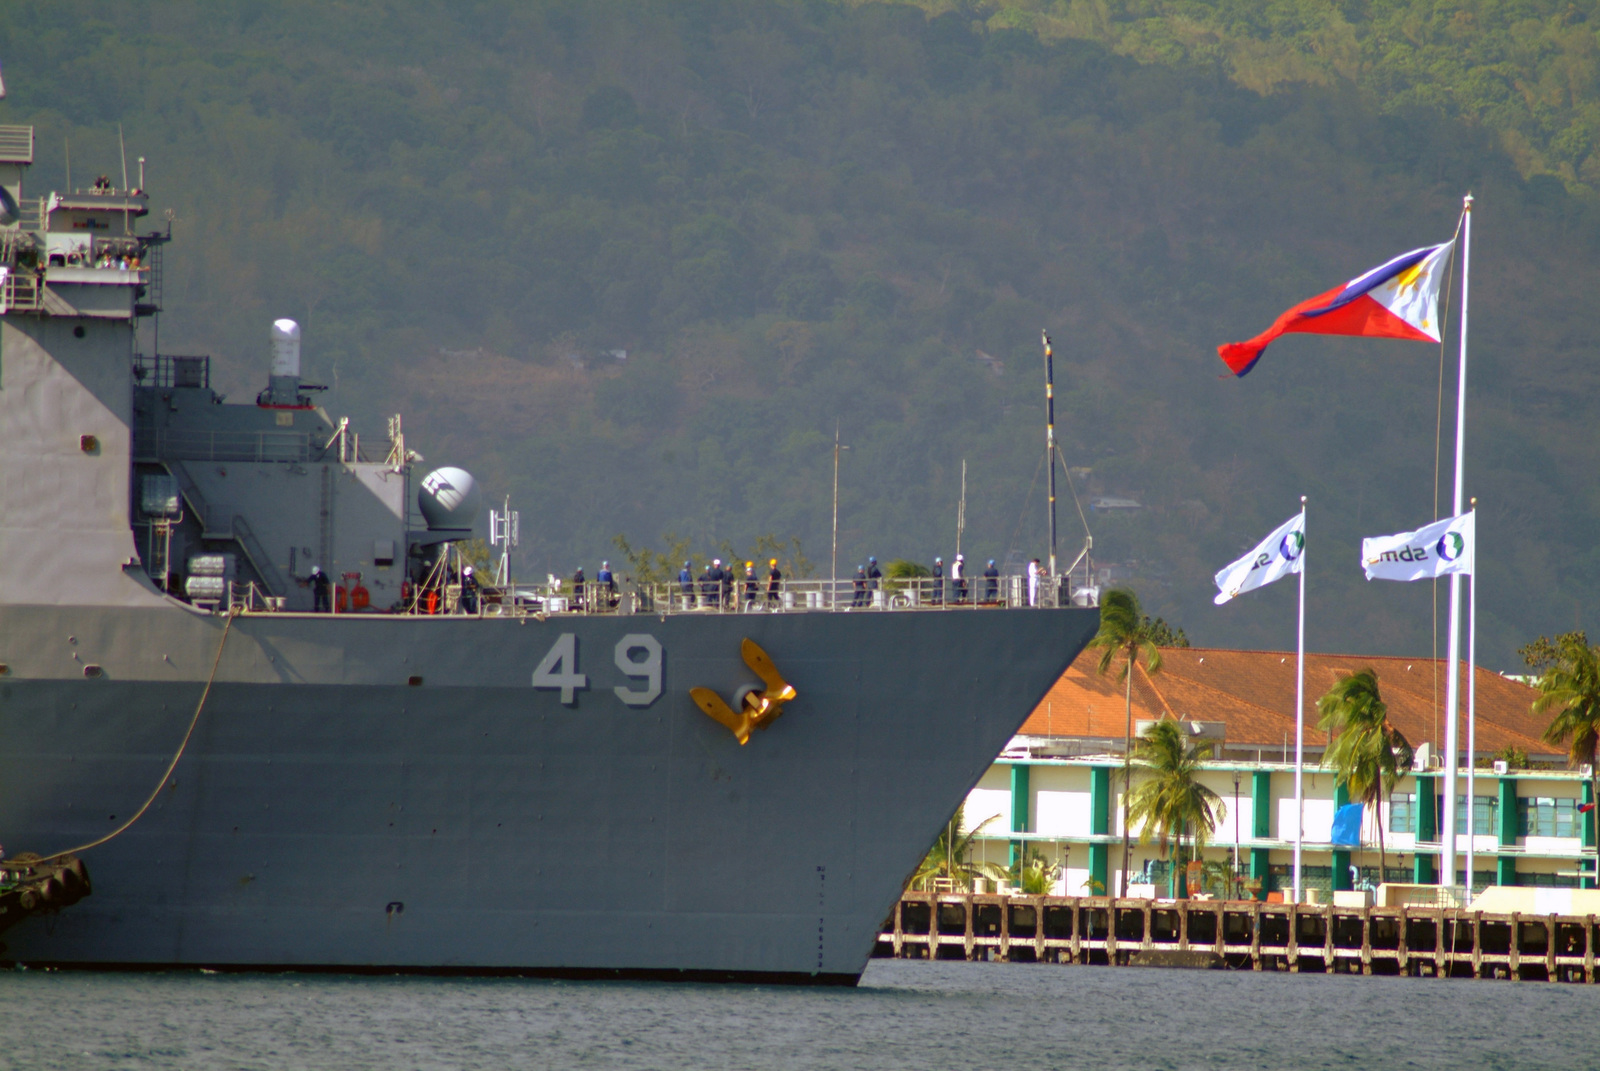 A view showing the starboard side bow of the US Navy (USN) Dock Landing Ship, USS HARPERS FERRY (LSD 49), as the ship is assisted by a tugboat while docking at Subic Bay, Philippines, after arriving to provide much needed humanitarian assistance for the victims of a devastating landslide, as part of the Forward Deployed, Amphibious Ready Group (ARG), the Navy's only forward-deployed amphibious force, out of Sasebo, Japan